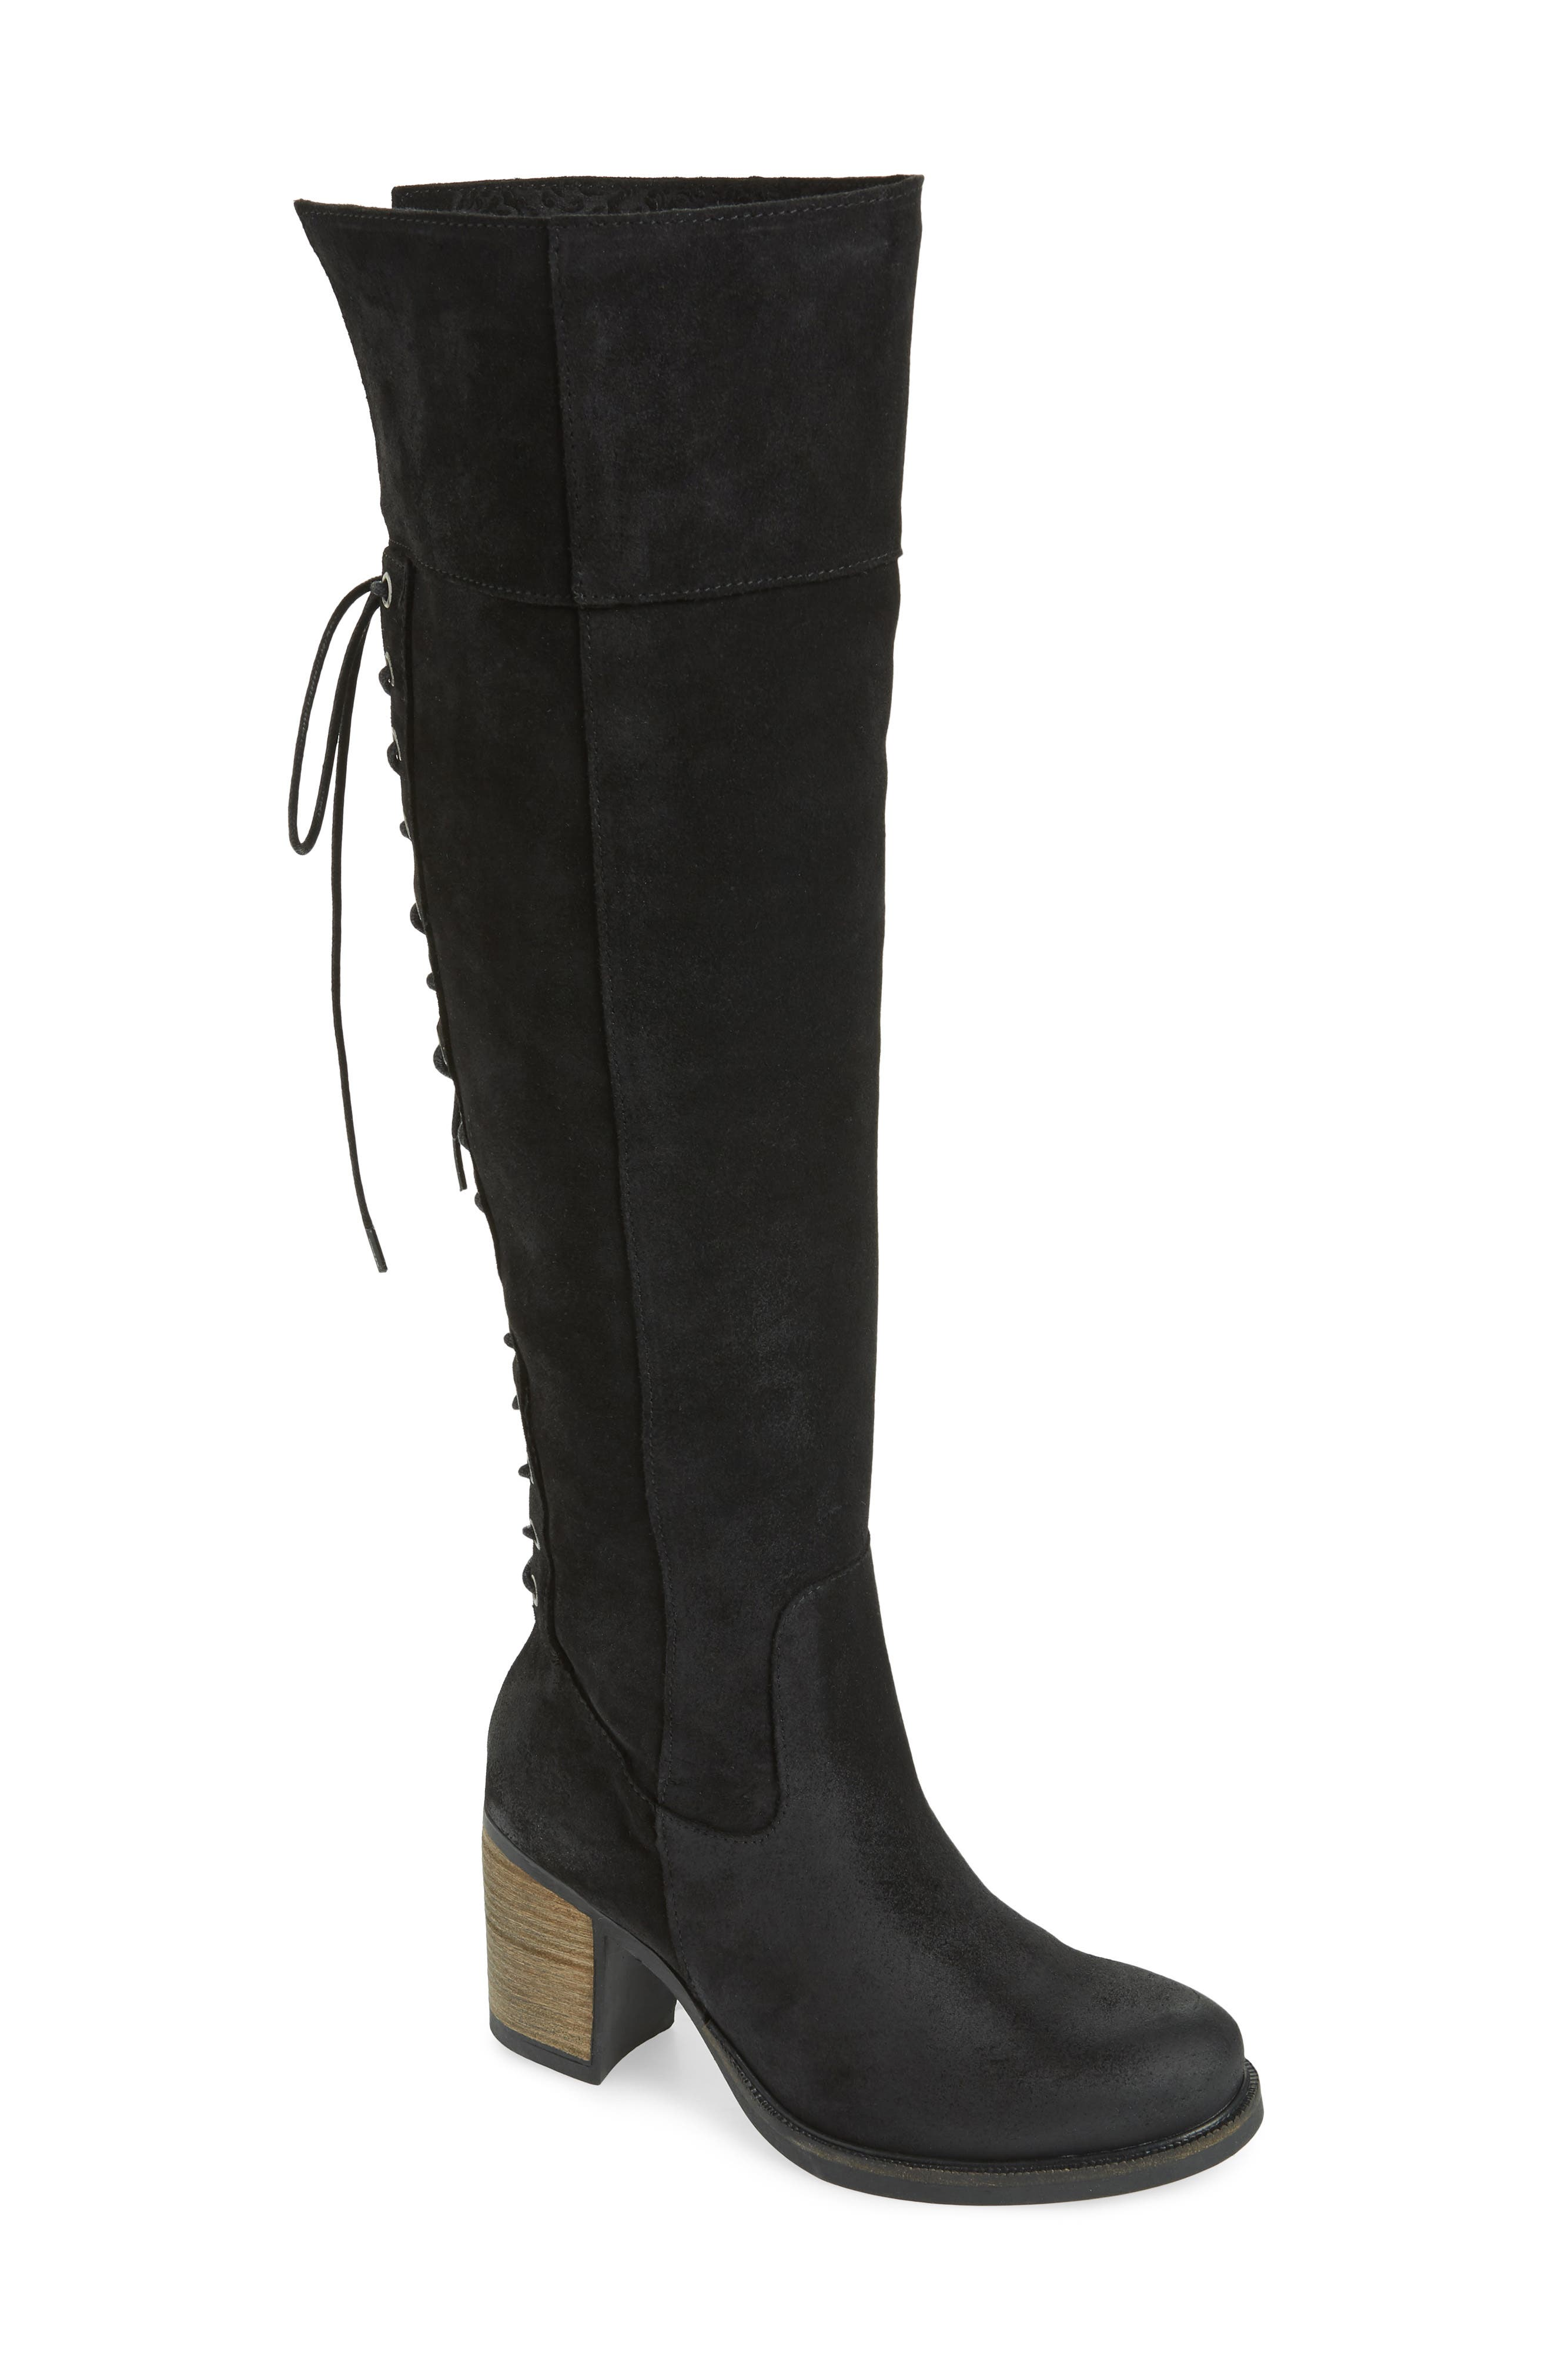 Bond Waterproof Over-the-Knee Boot,                             Main thumbnail 1, color,                             BLACK OIL SUEDE